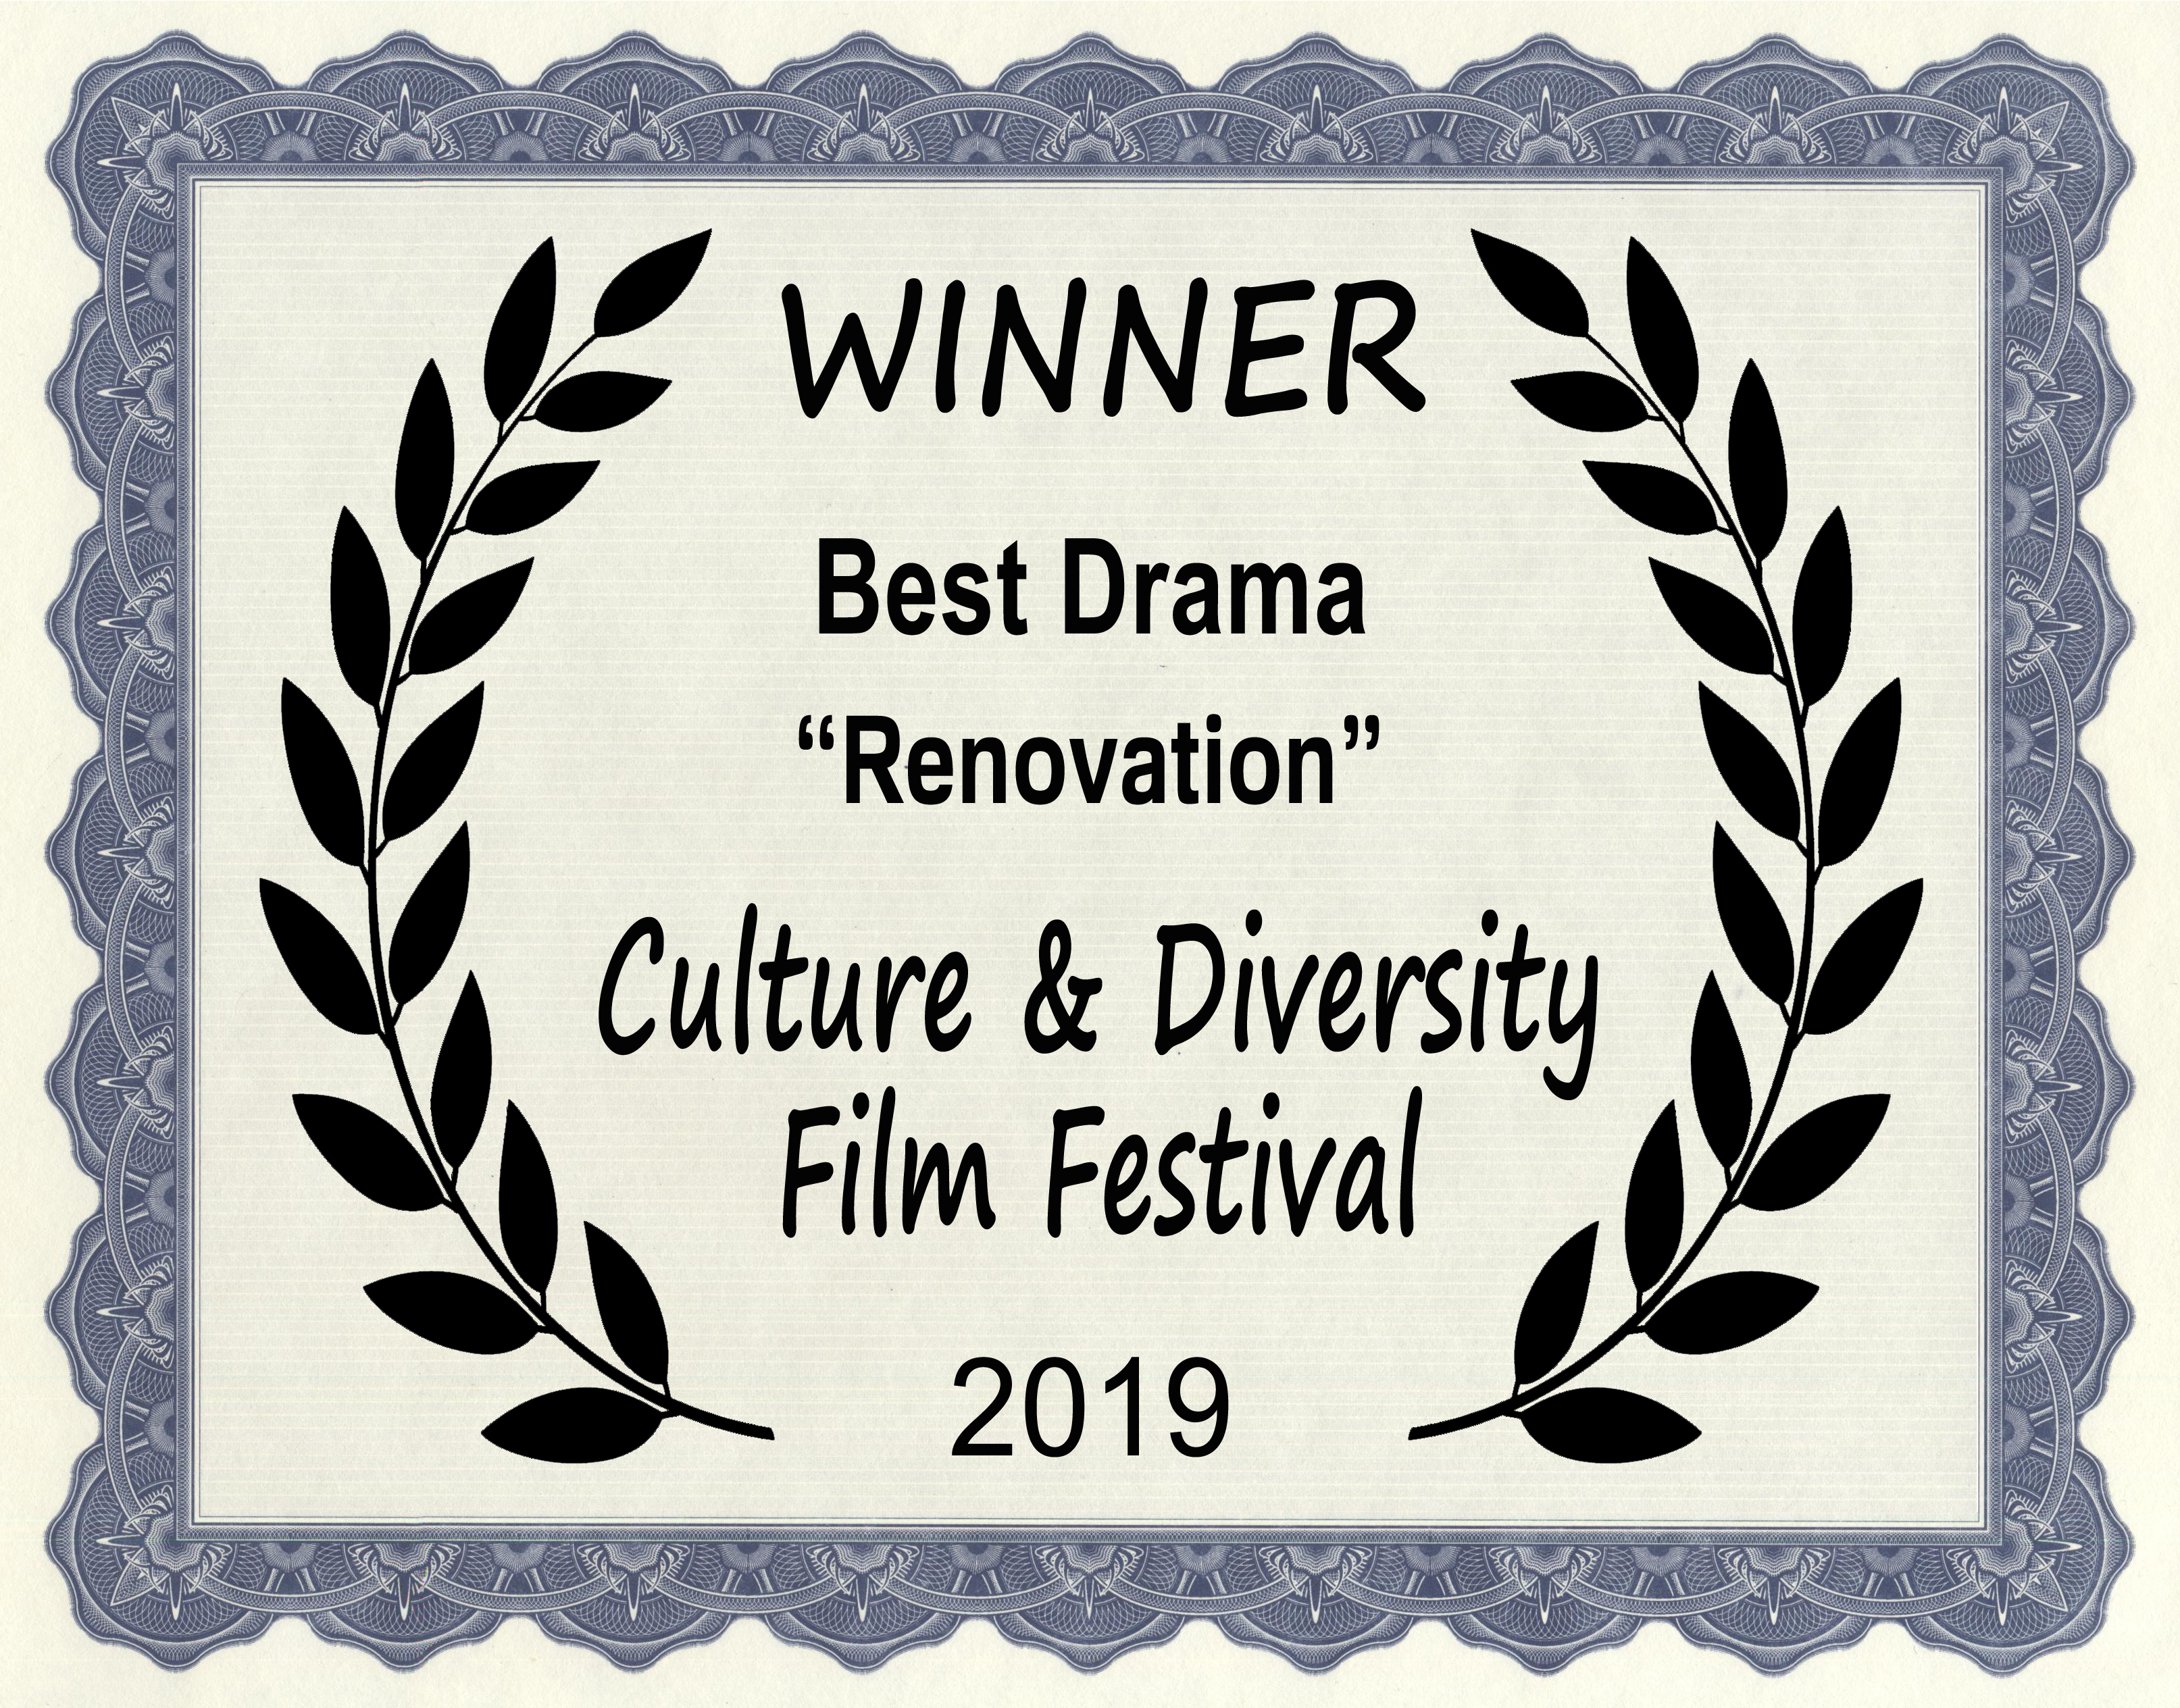 Best Drama at Culture & Diversity Film Festival in Hollywood